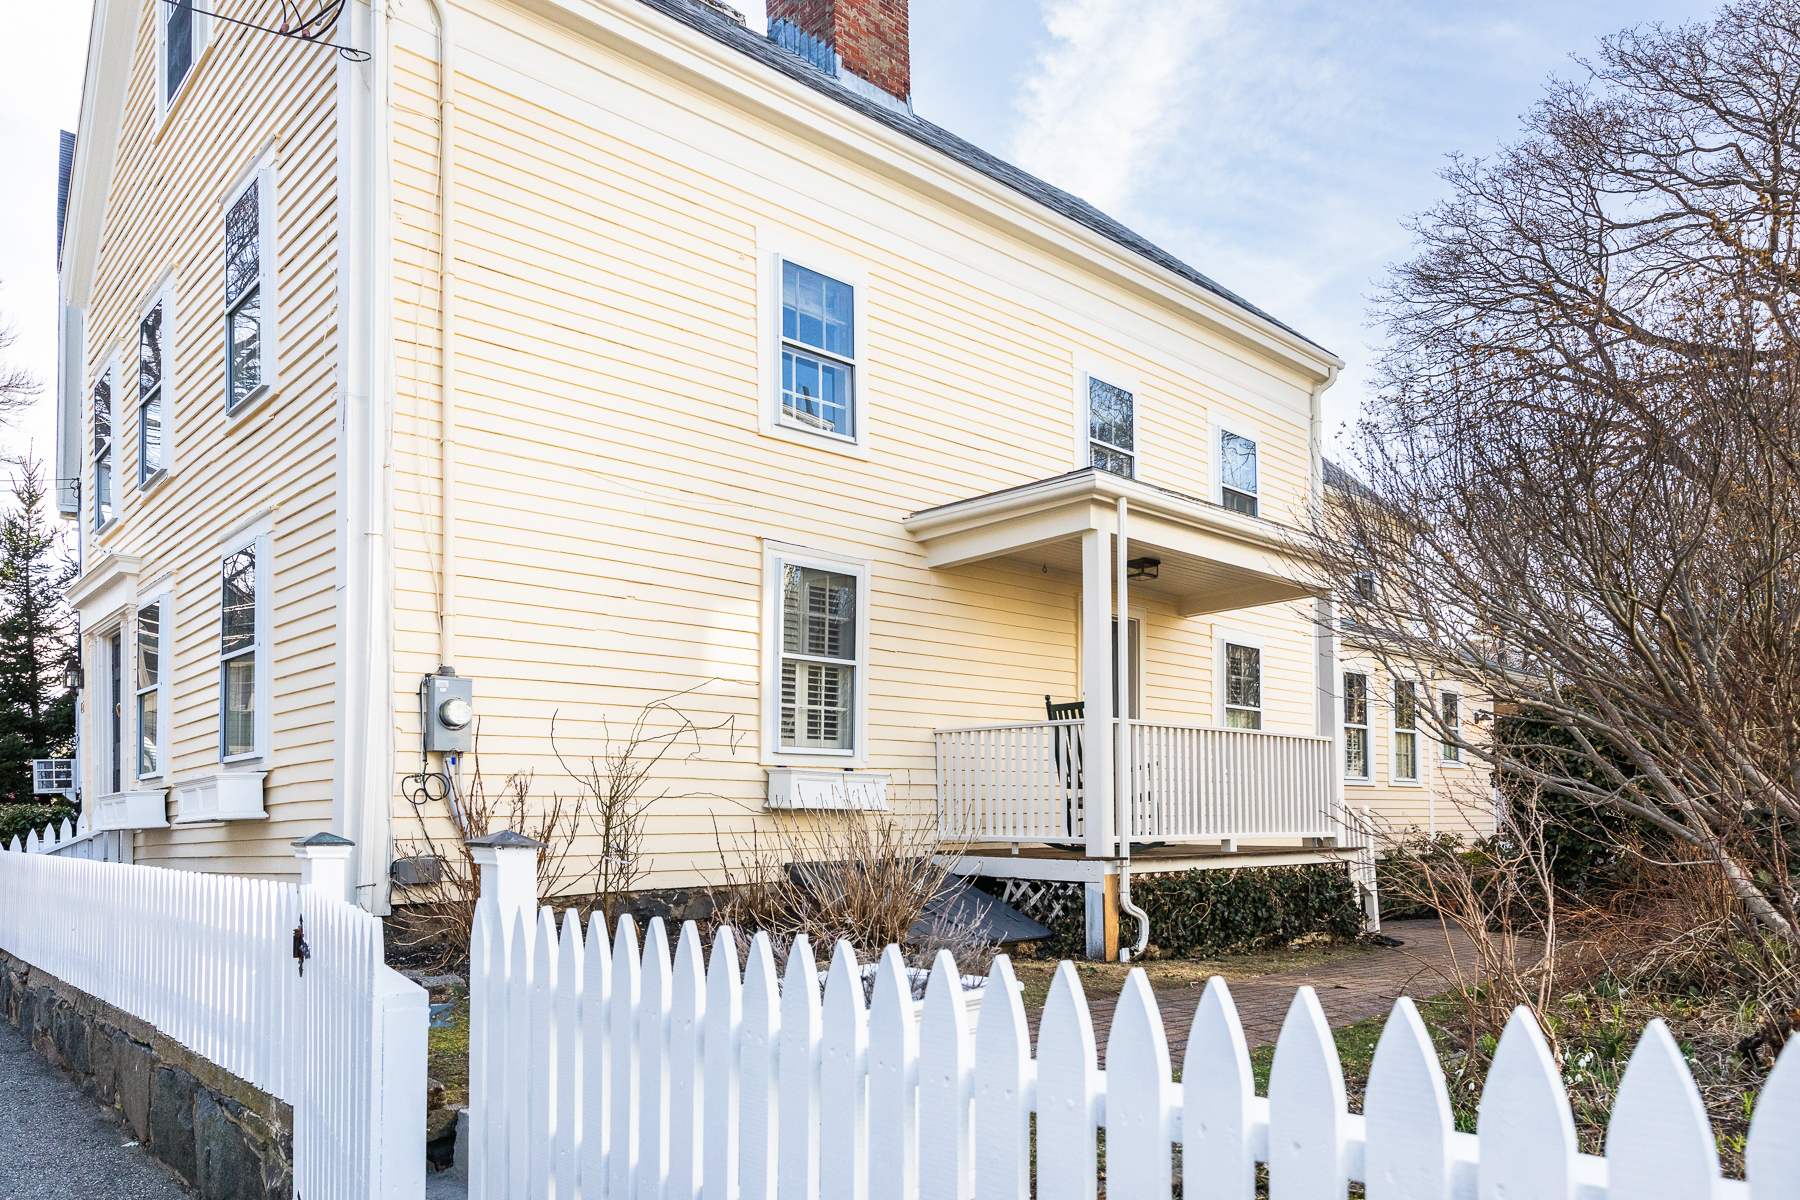 Single Family Home for Active at Antique colonial mixing charm, character, and modern amenities 62 Front Street Marblehead, Massachusetts 01945 United States